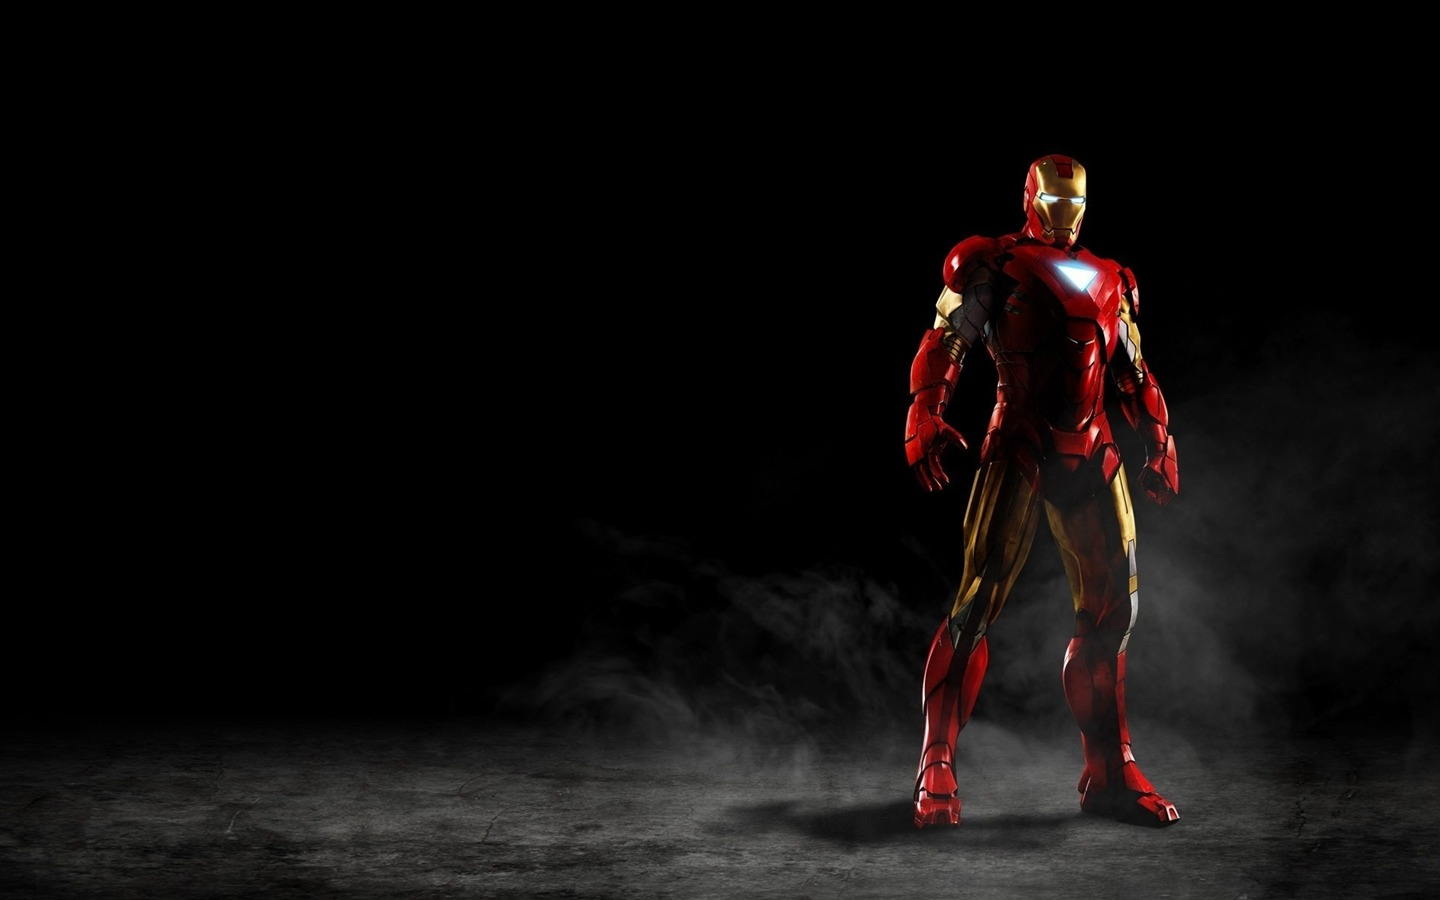 2013 Iron Man 3 Movie HD Desktop Wallpaper 12 - 1440x900 wallpaper ...